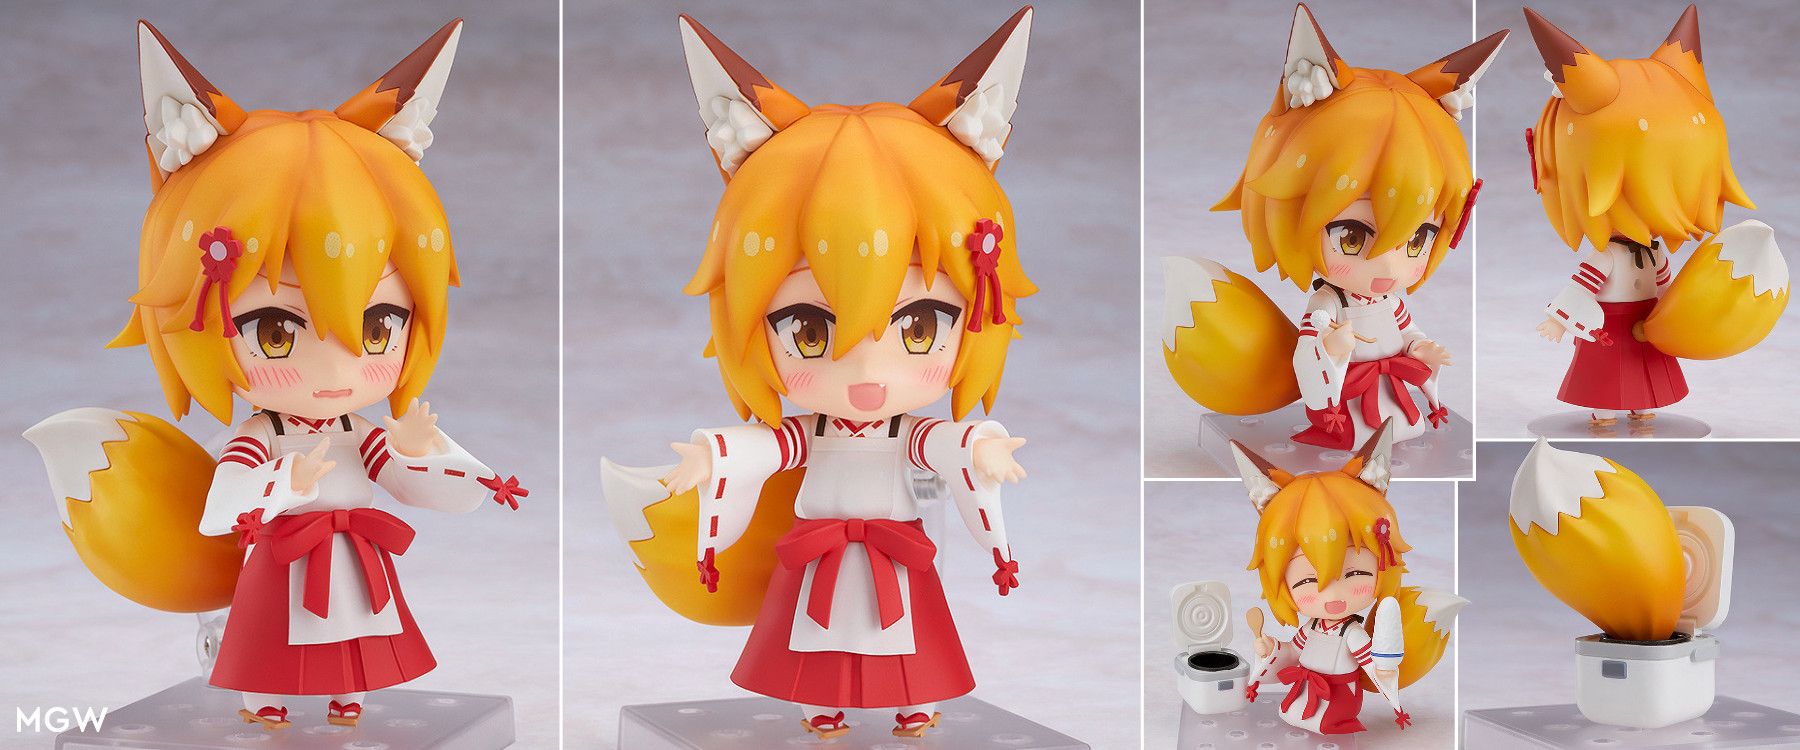 Nendoroid Senko by Good Smile Company from The Helpful Fox Senko san